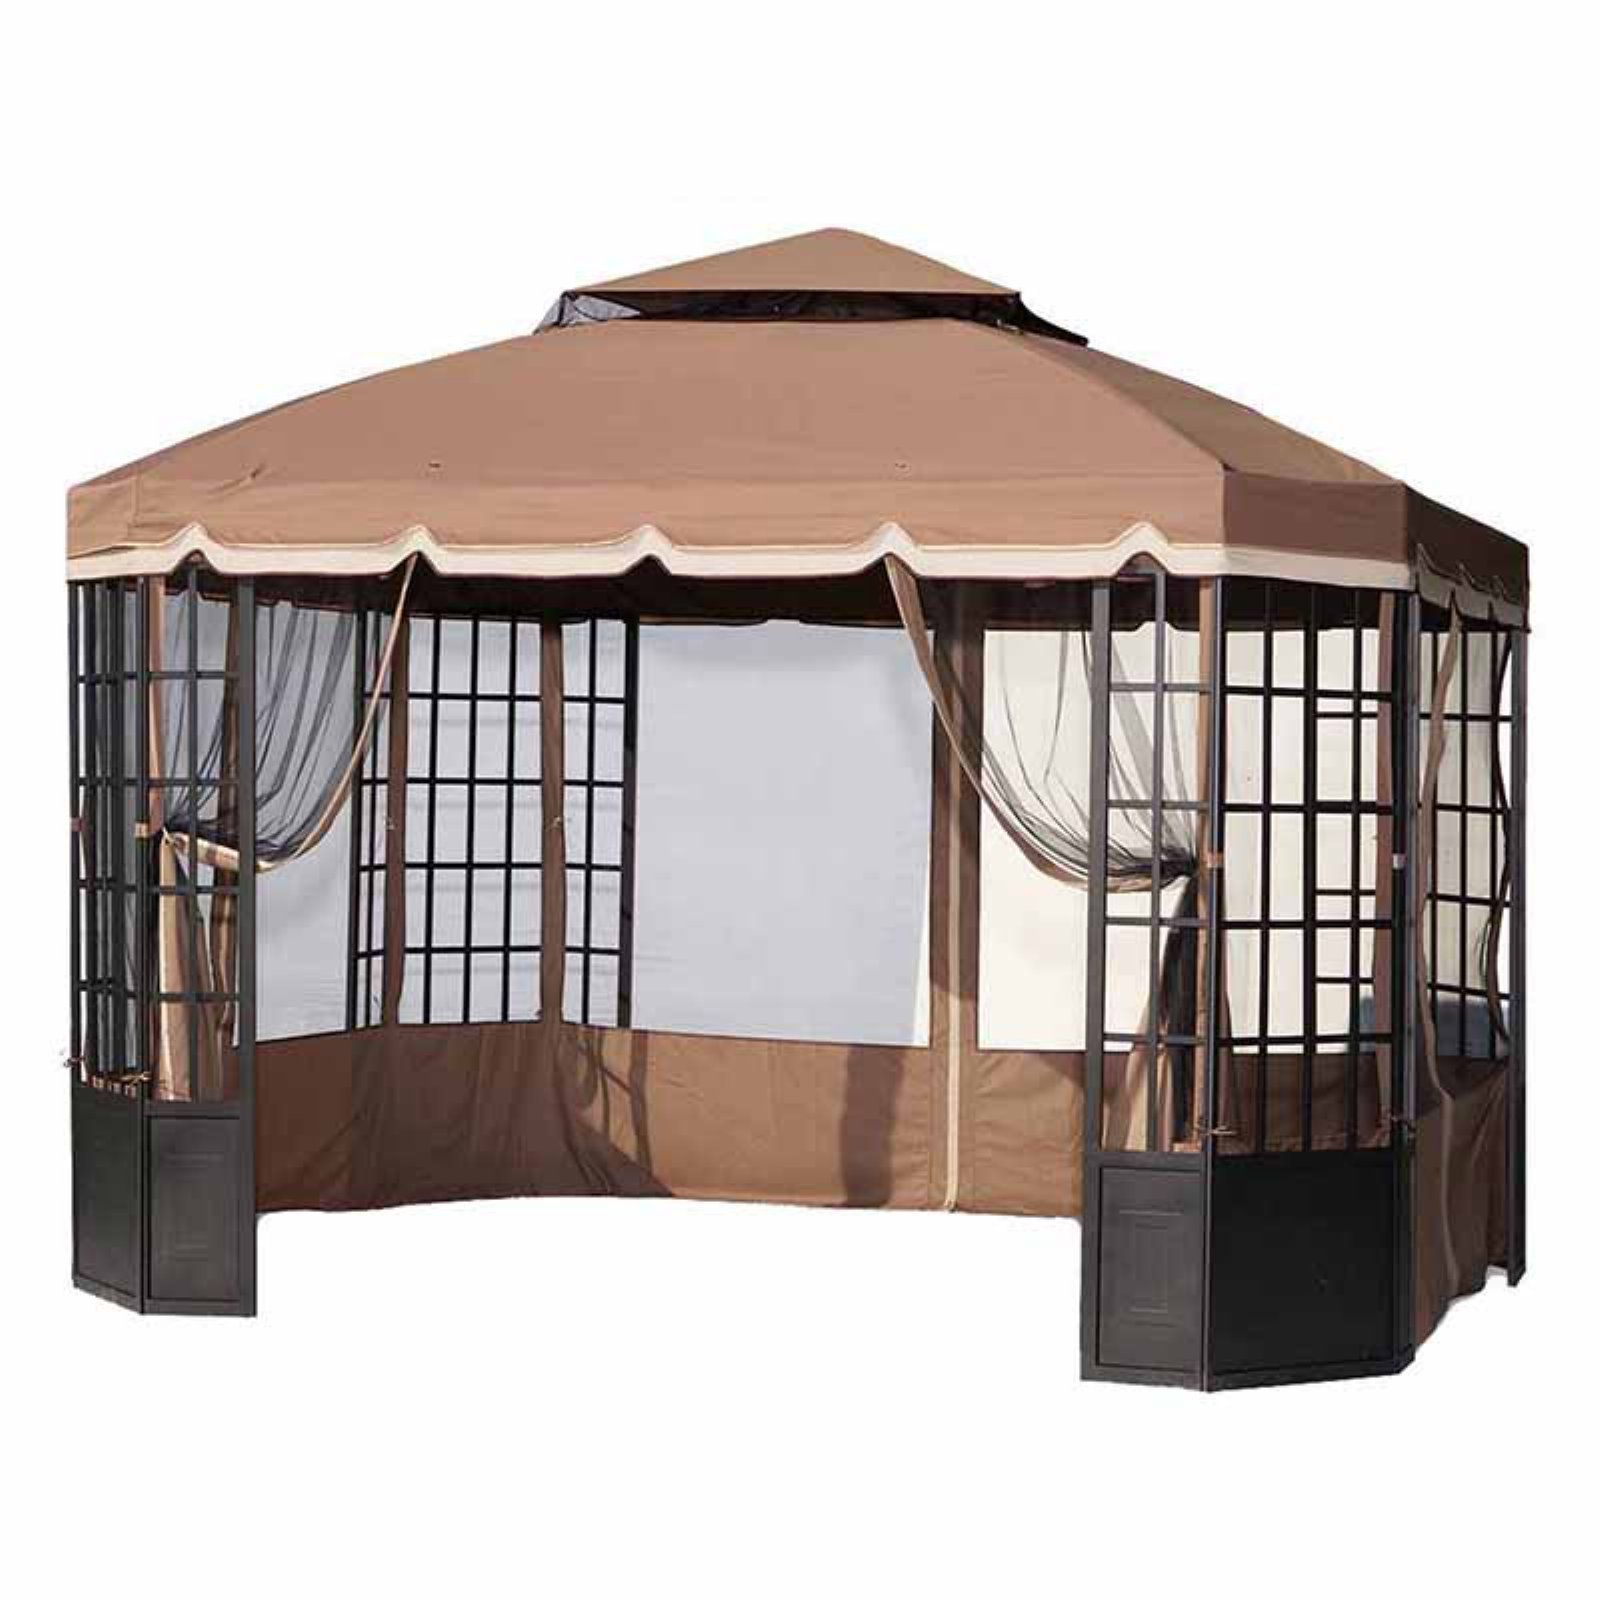 Sunjoy 10 X 12 Ft Replacement Canopy Cover For L Gz120pst 2 Spring Bay Window Gazebo Gazebo Replacement Canopy Bay Window